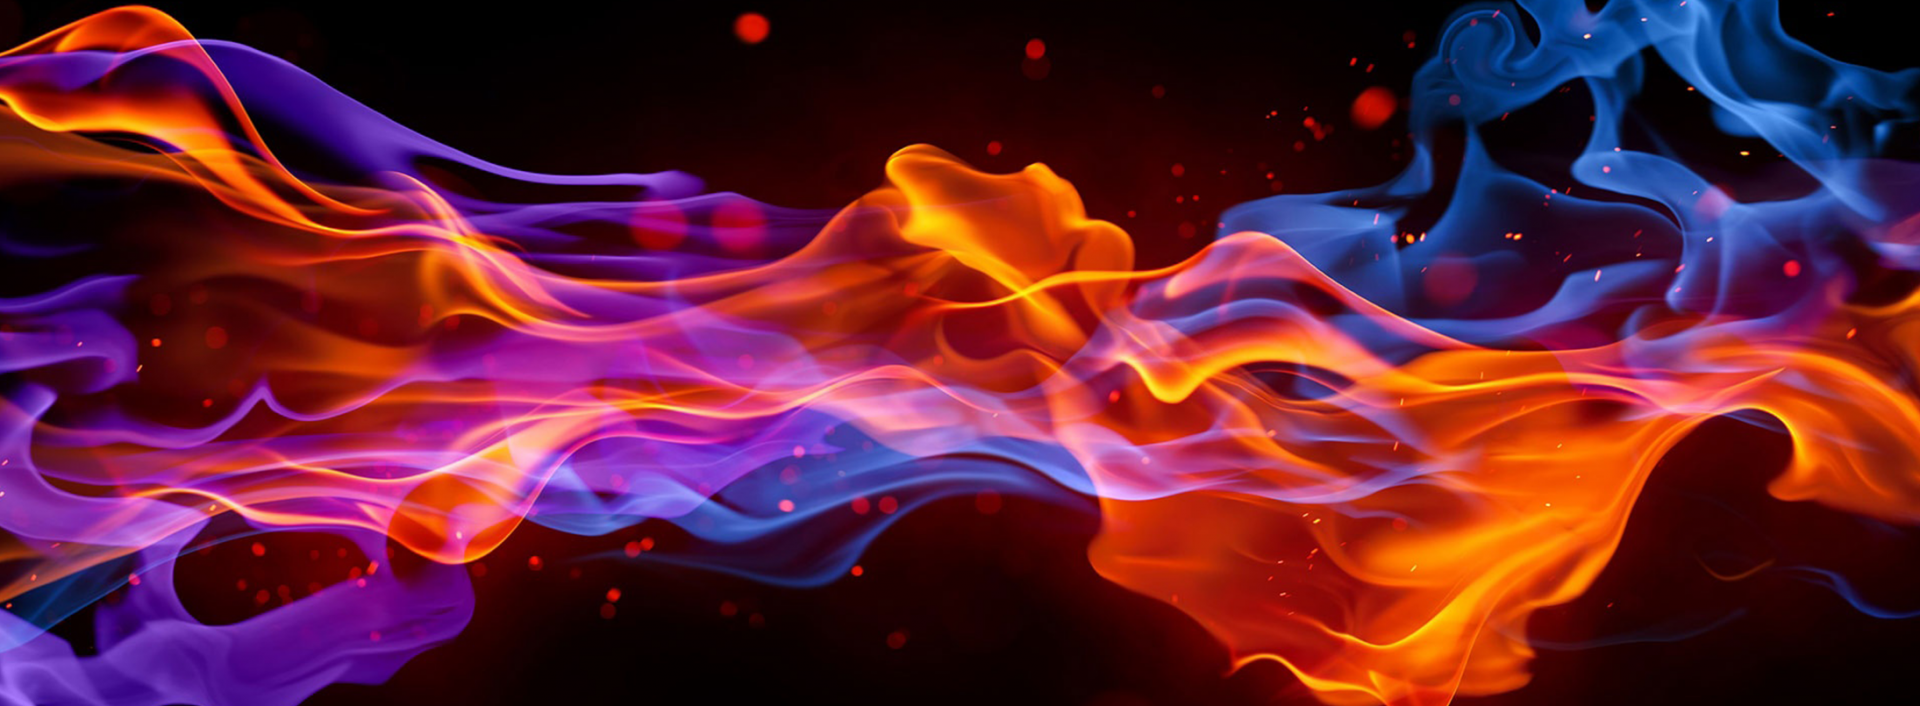 Coloured flames on black background